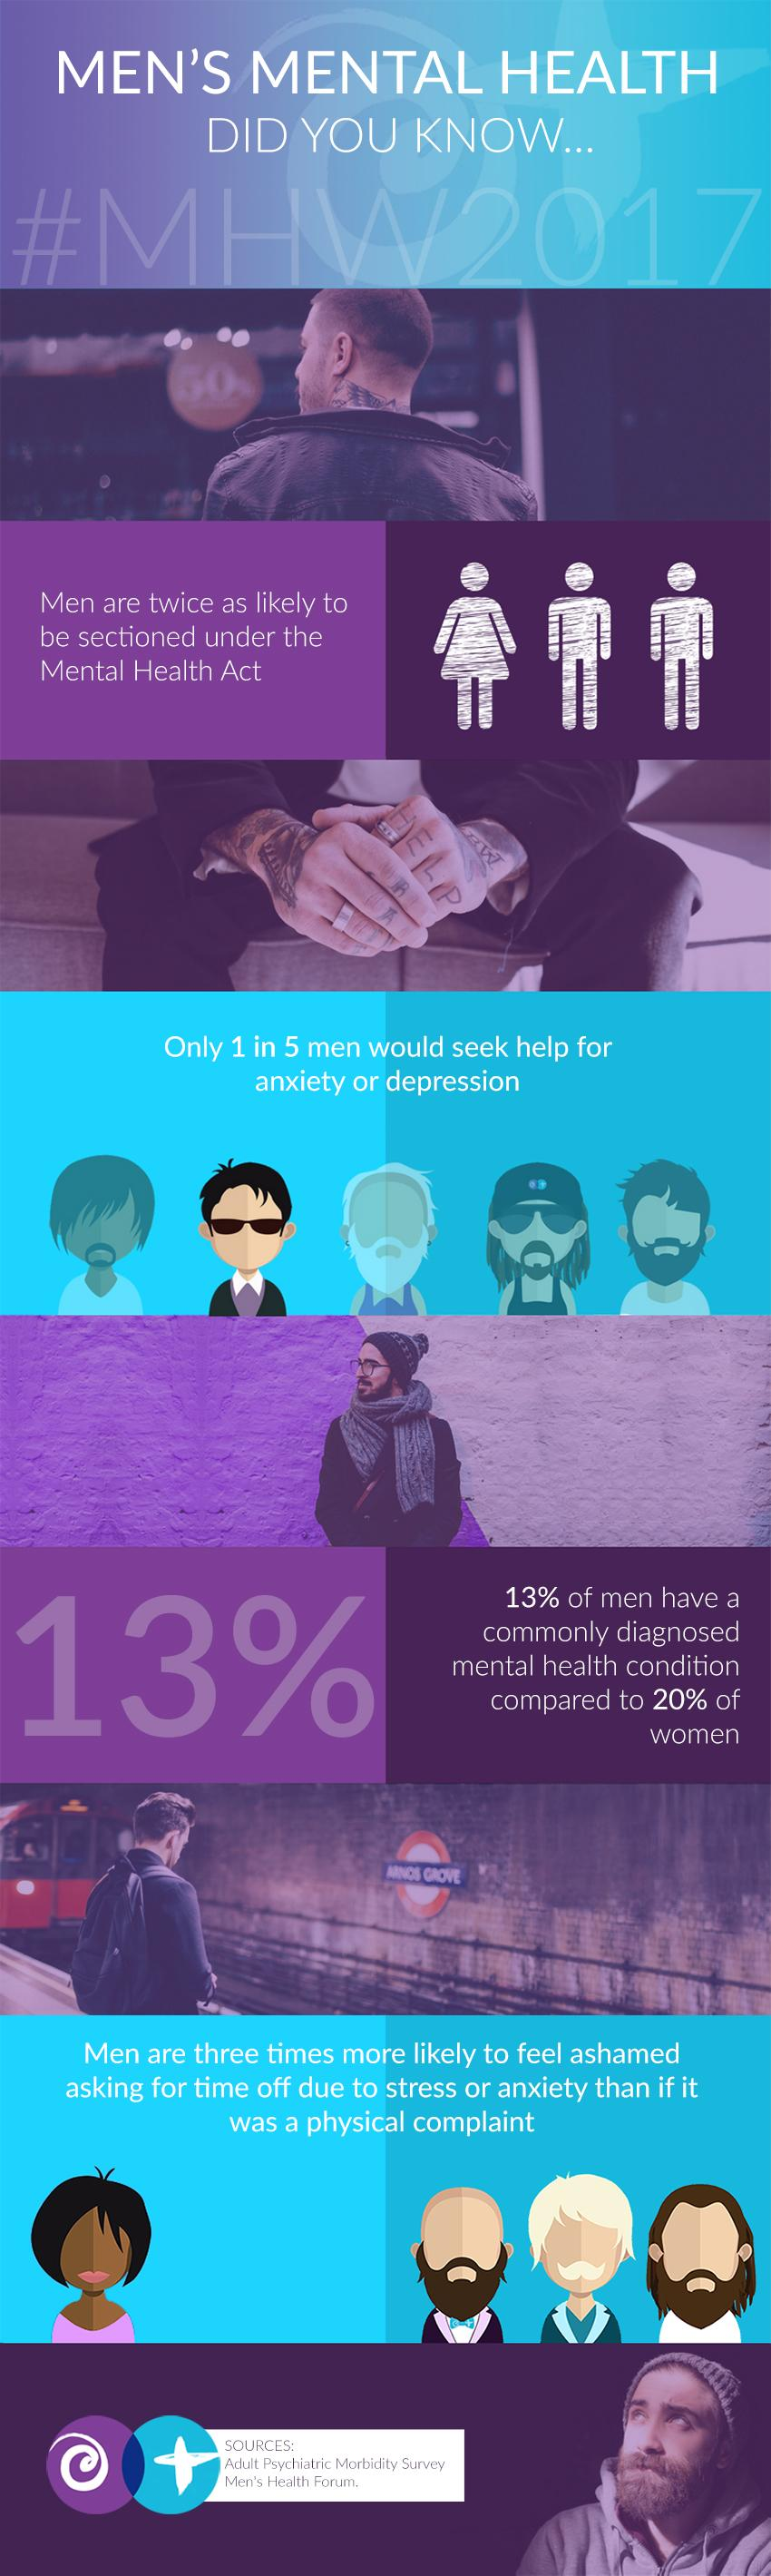 Men's Mental Health Infographic